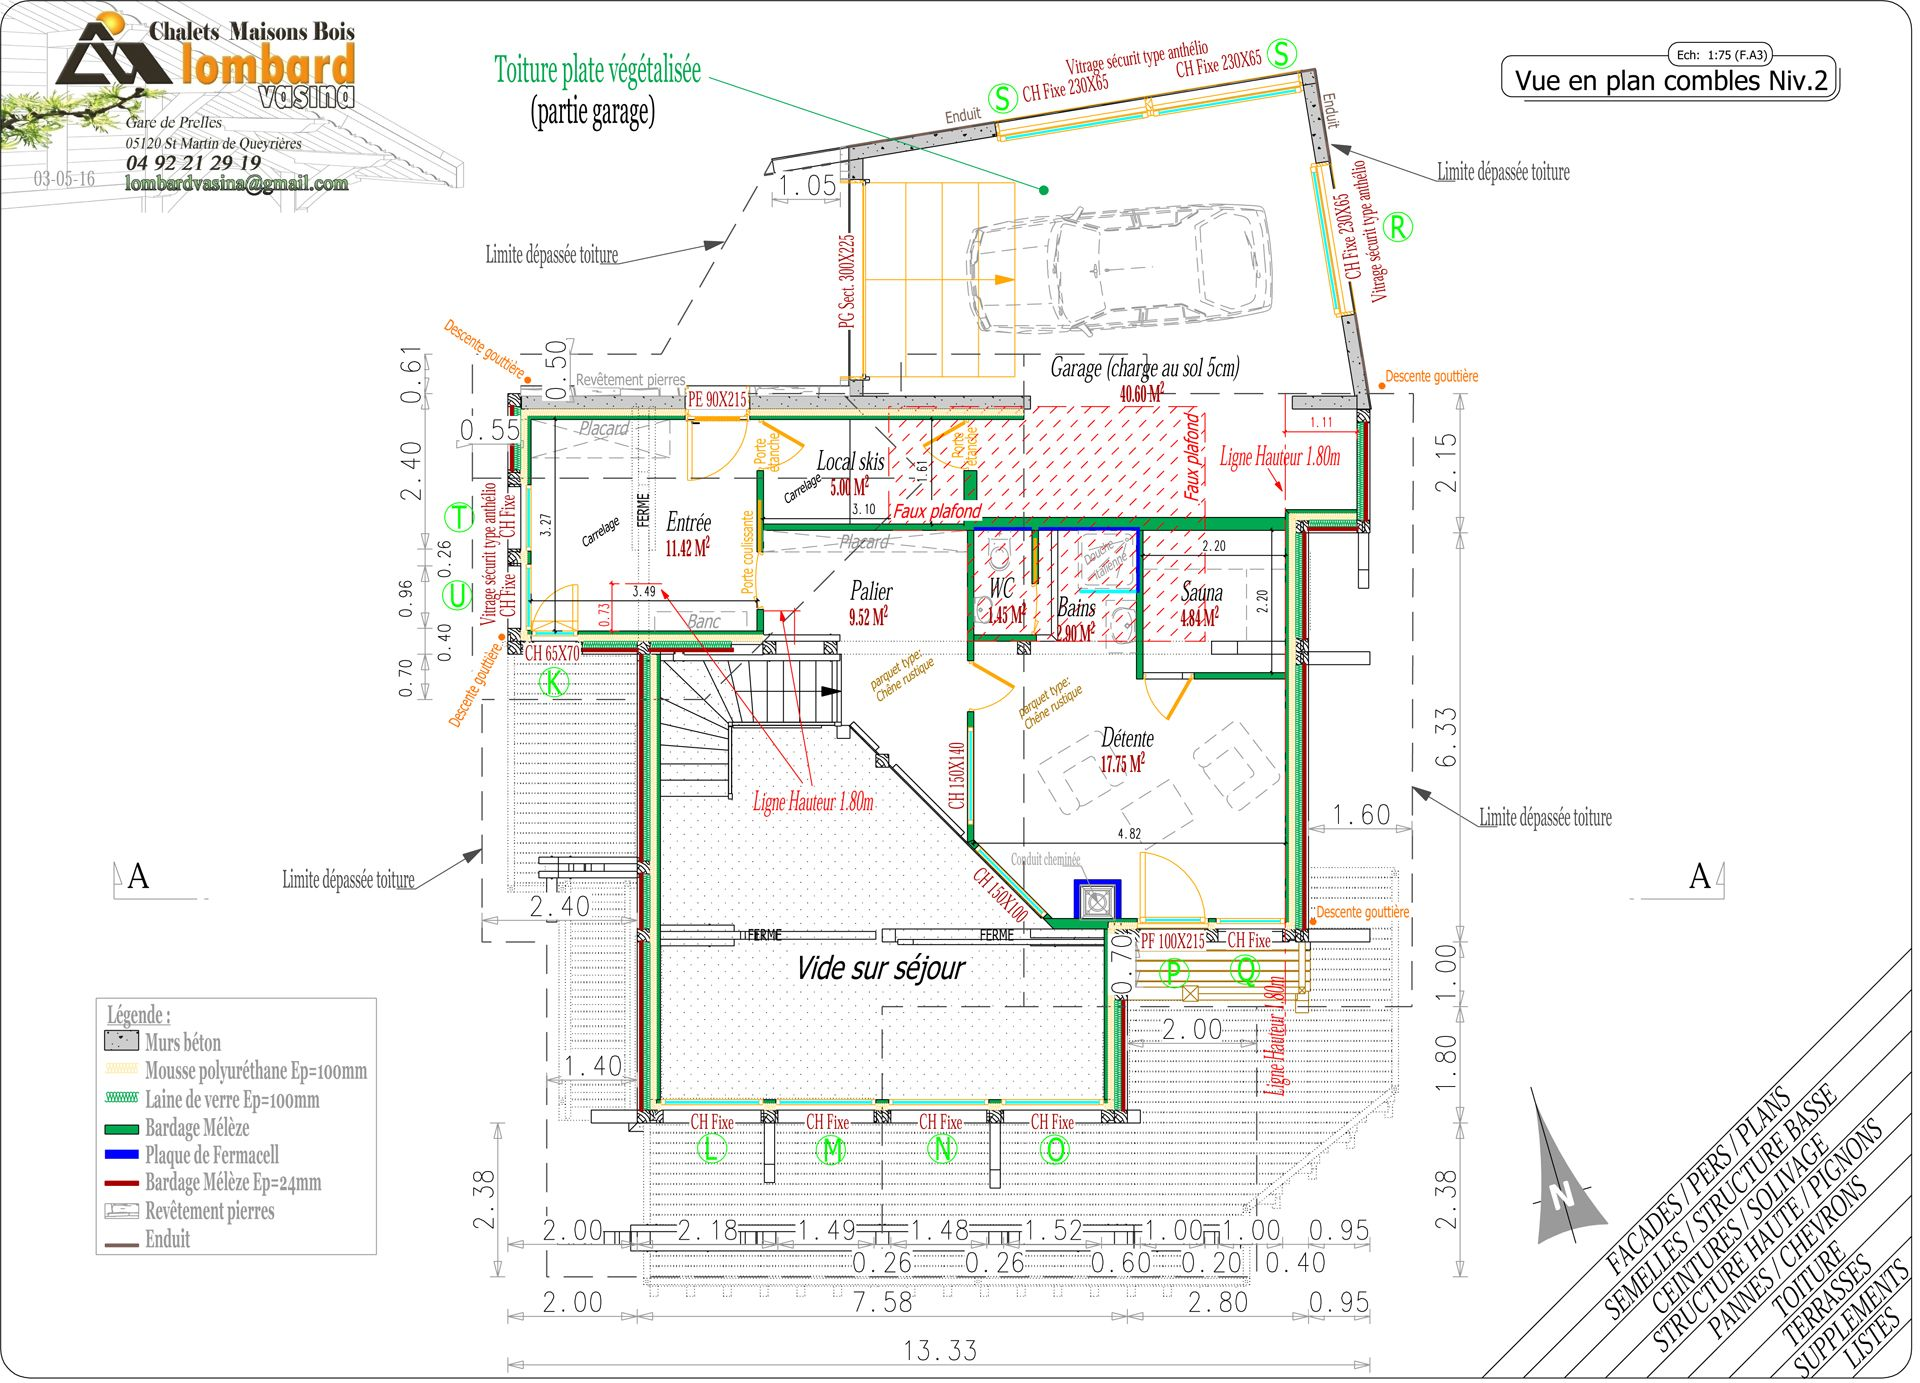 Chalet plan draw by Lombard Vasina. computer drawing